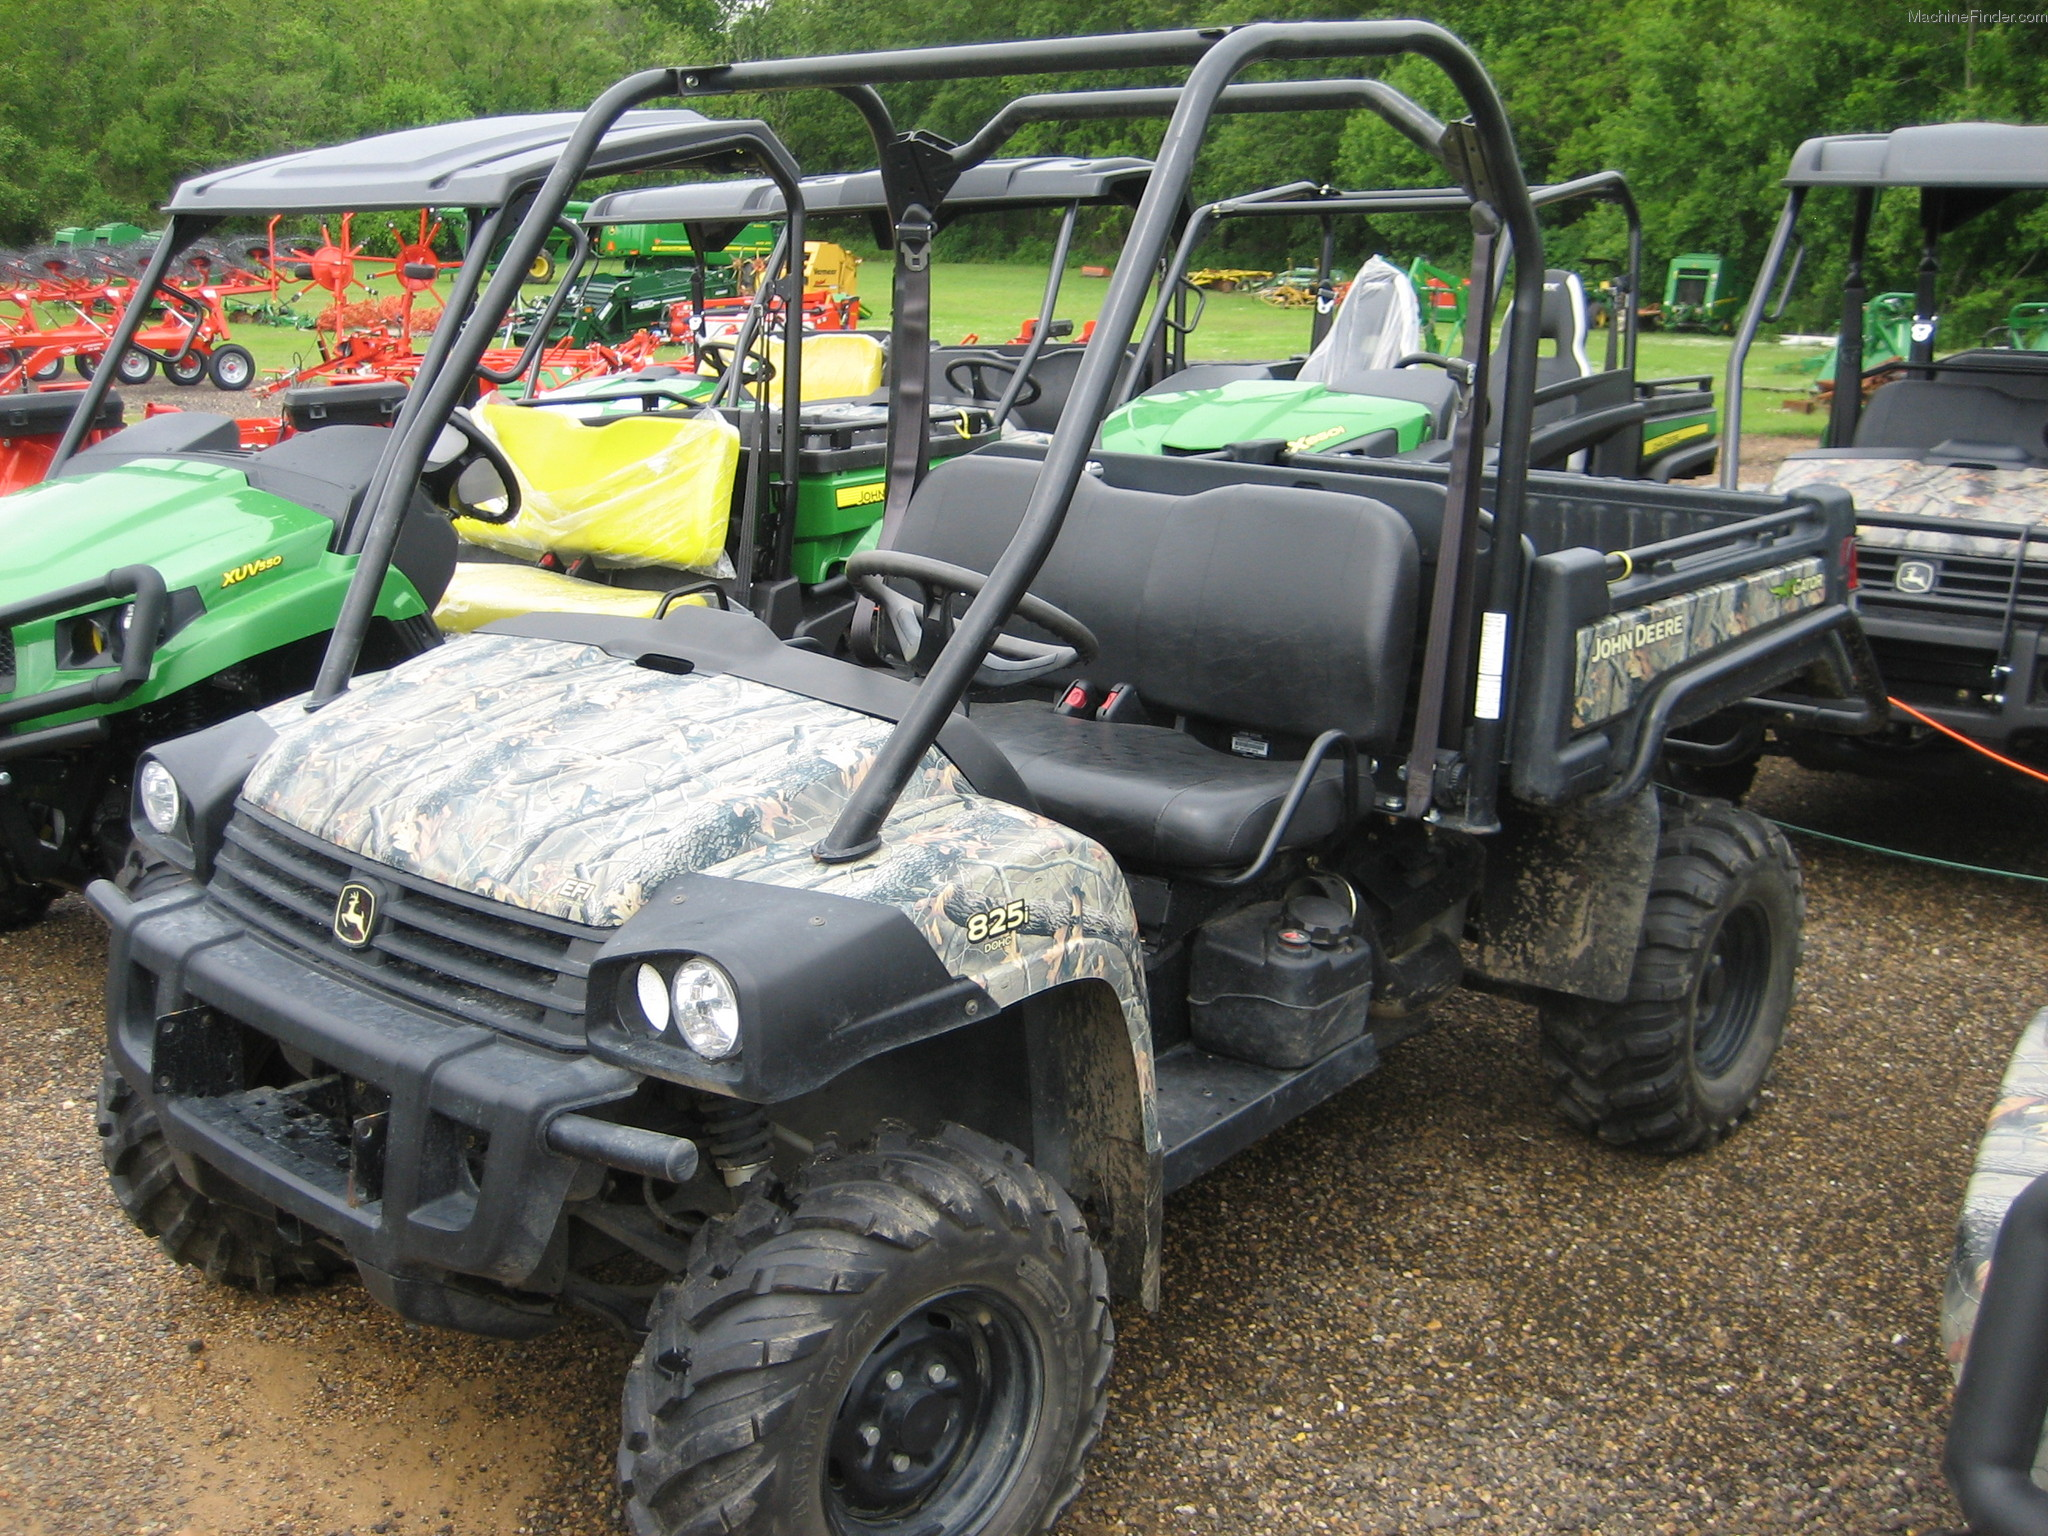 2011 John Deere XUV 825I CAMO ATV's and Gators - John Deere ...